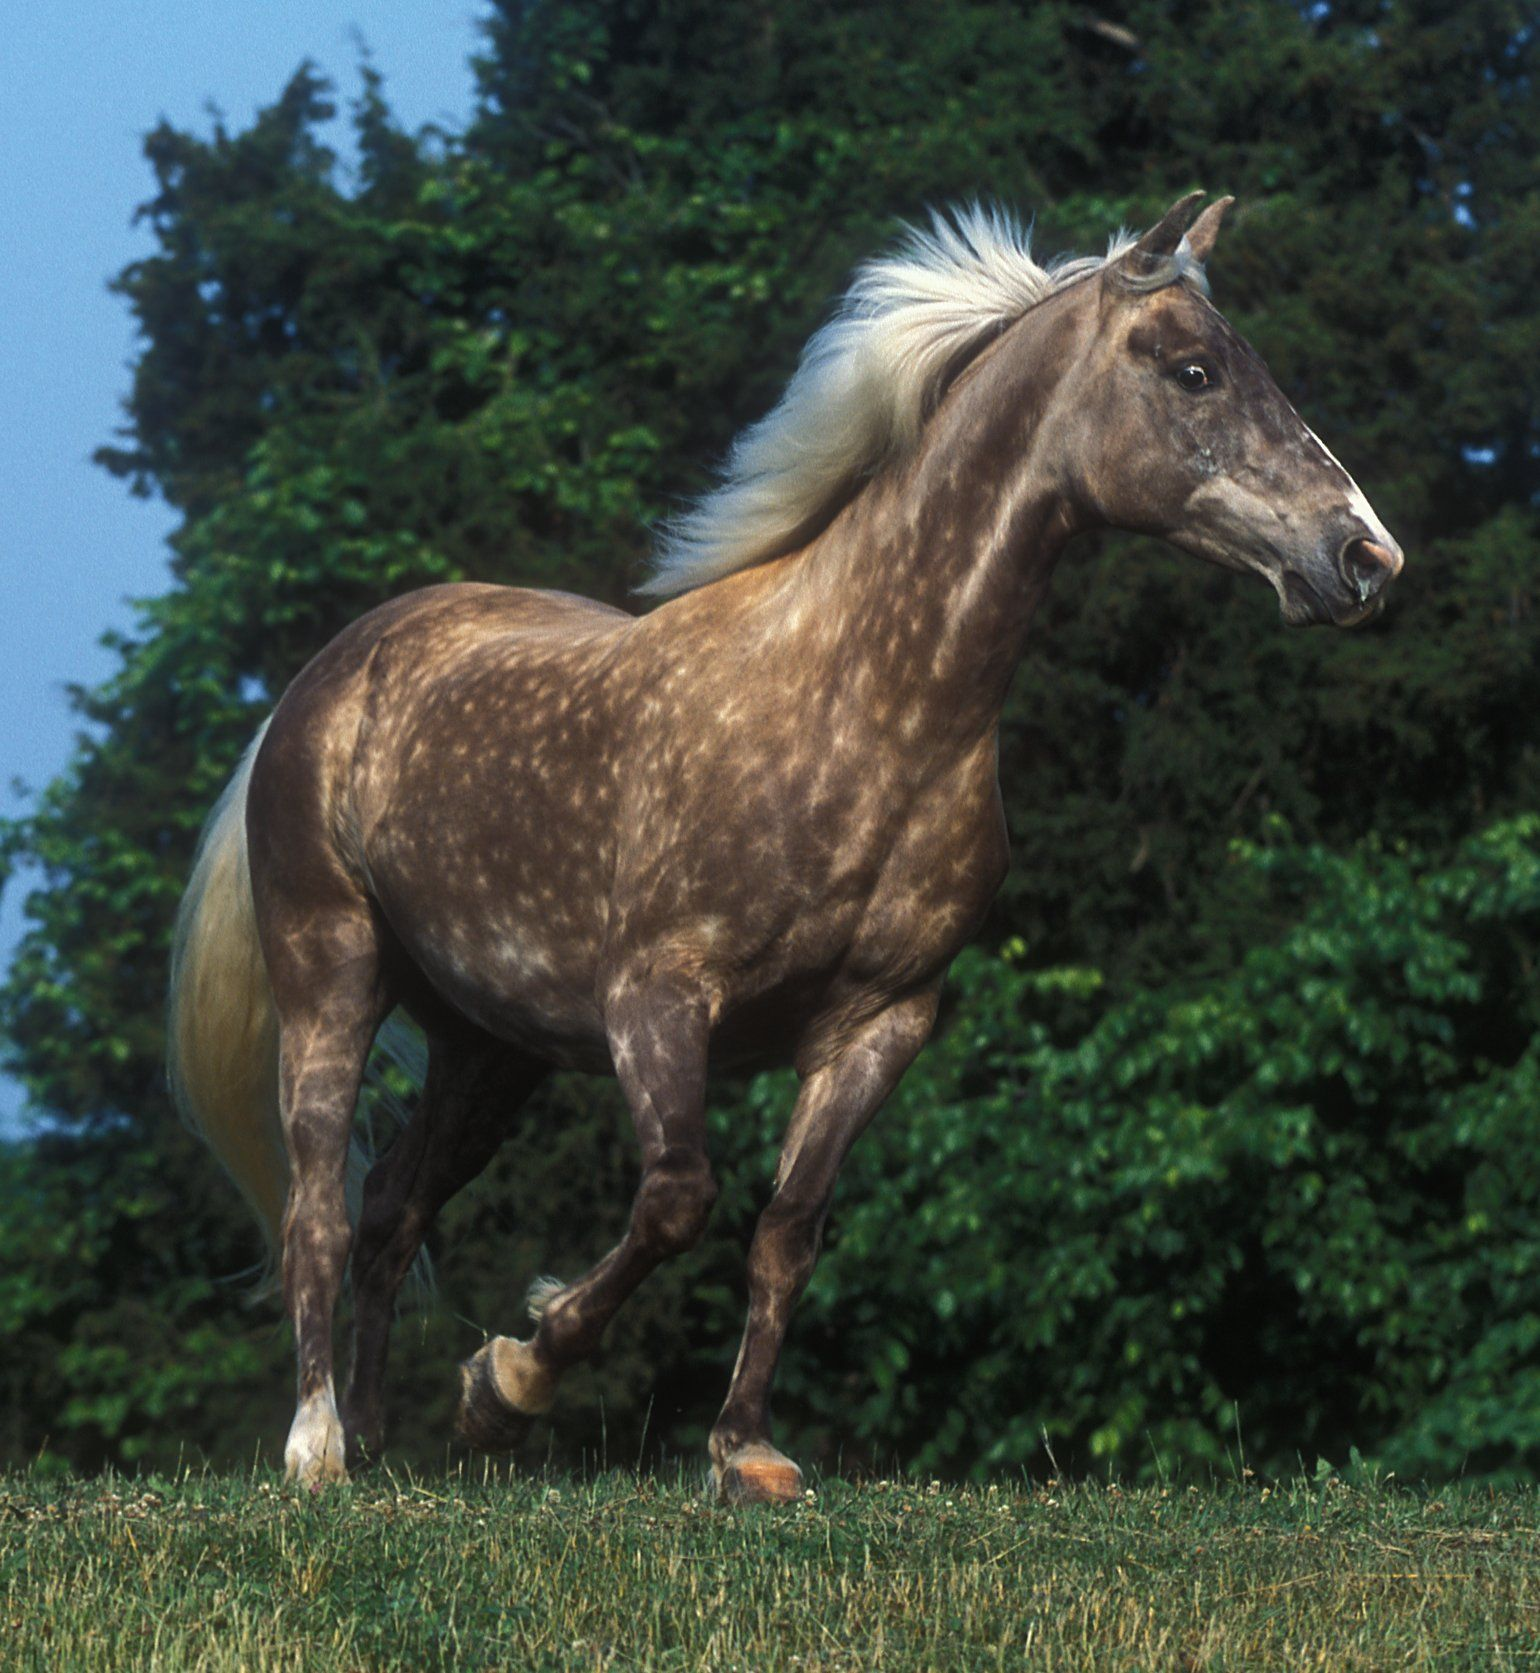 Animals Mountain Horse Free high quality background pictures